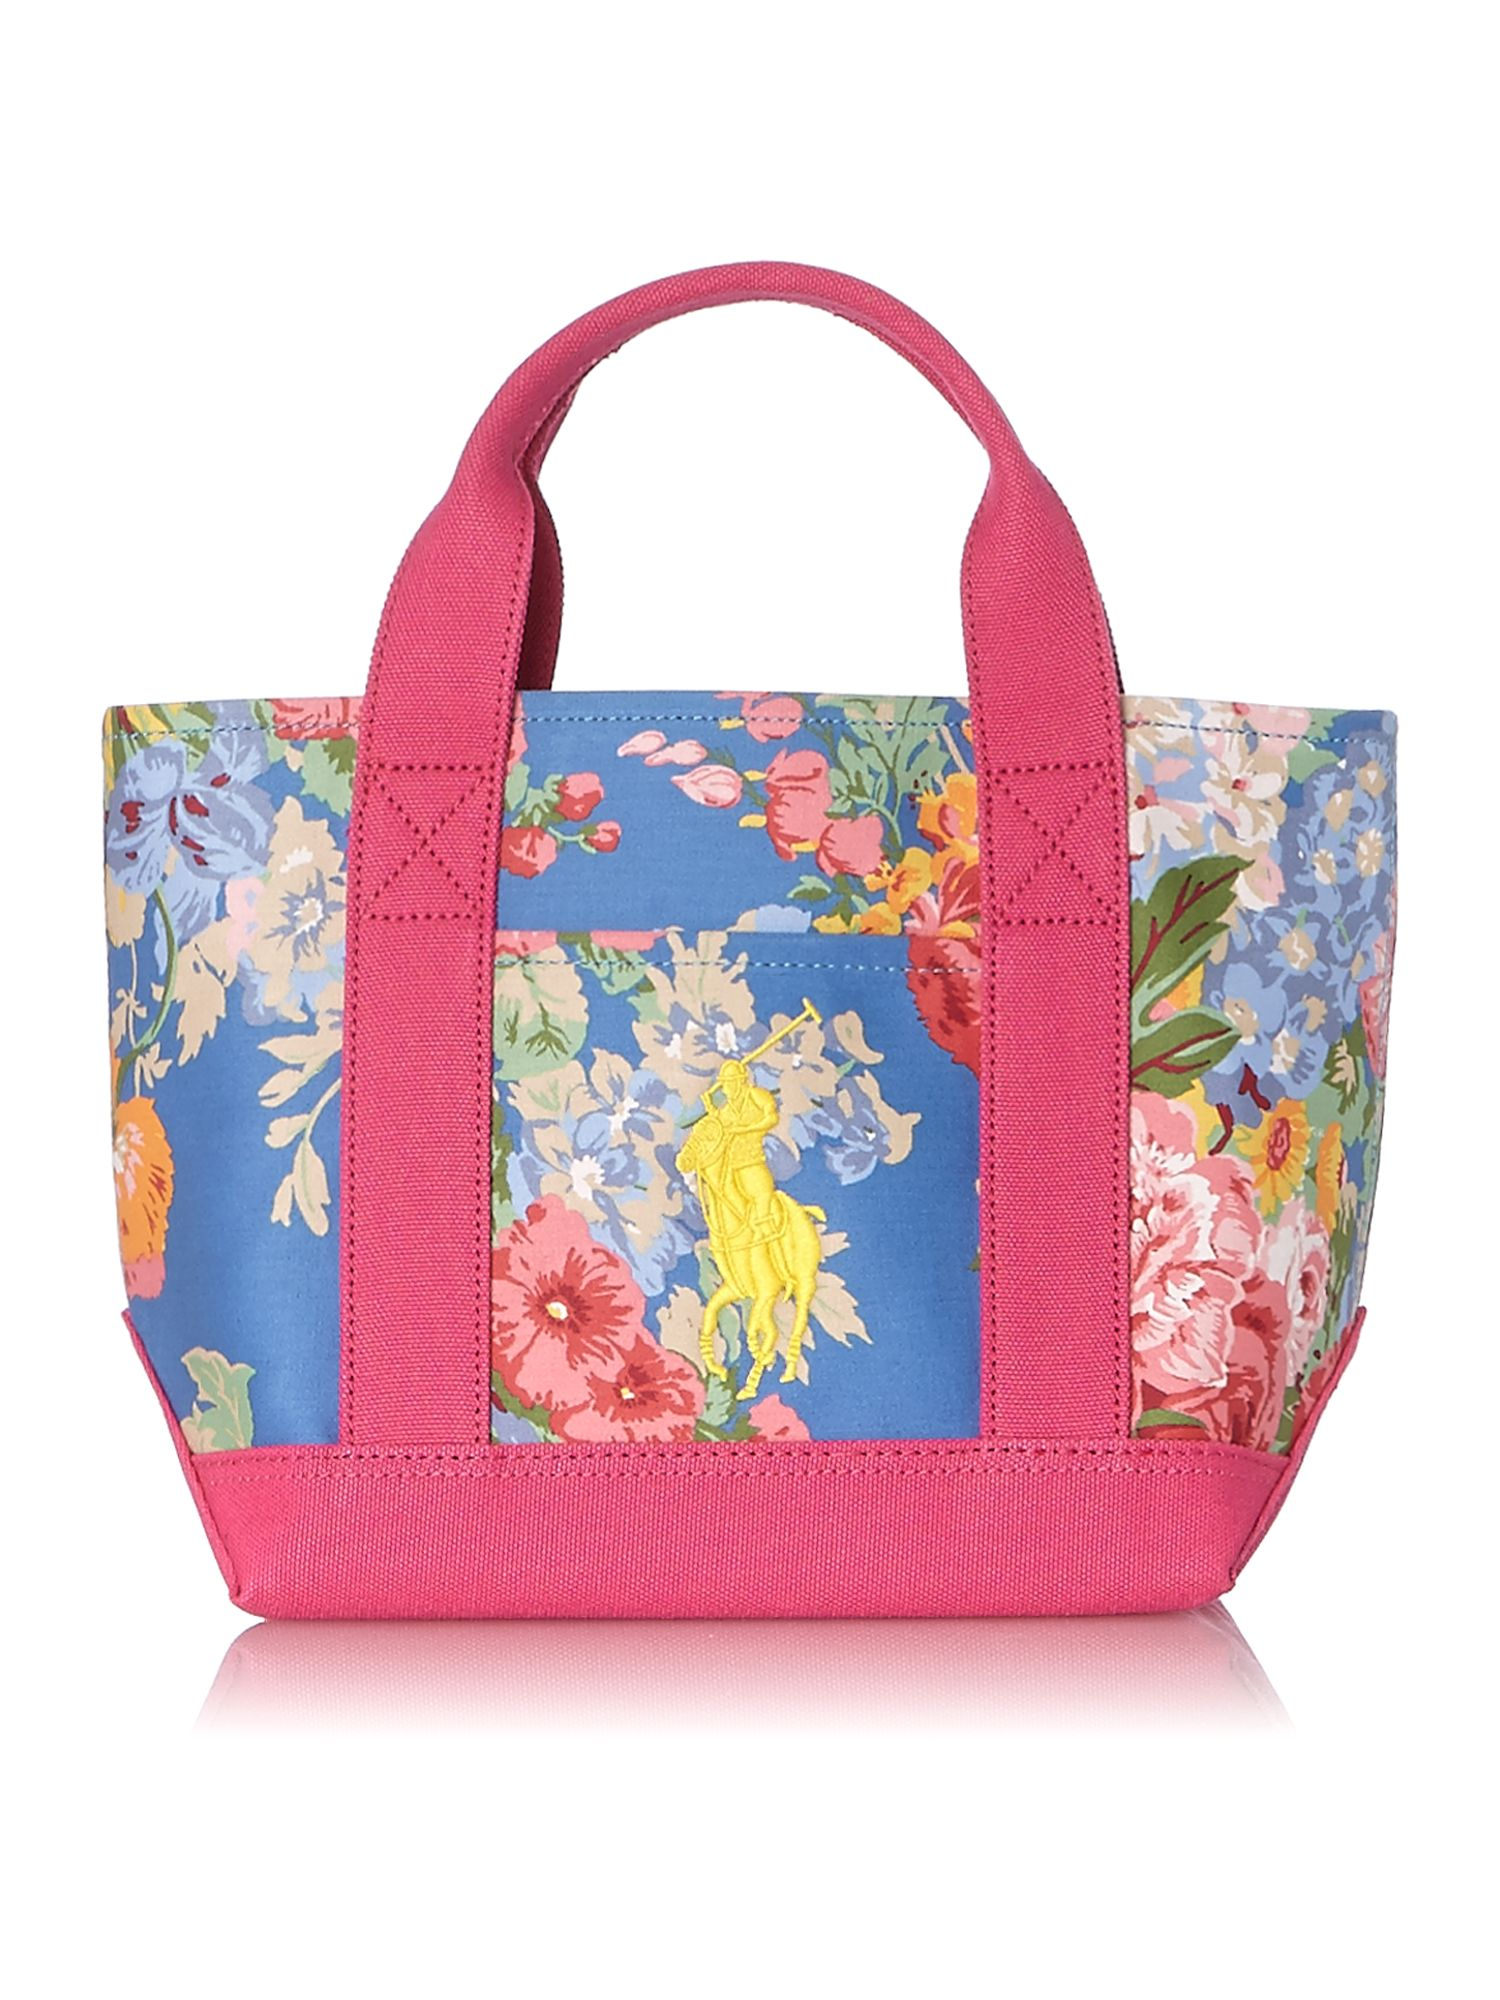 Girls mini tote bag